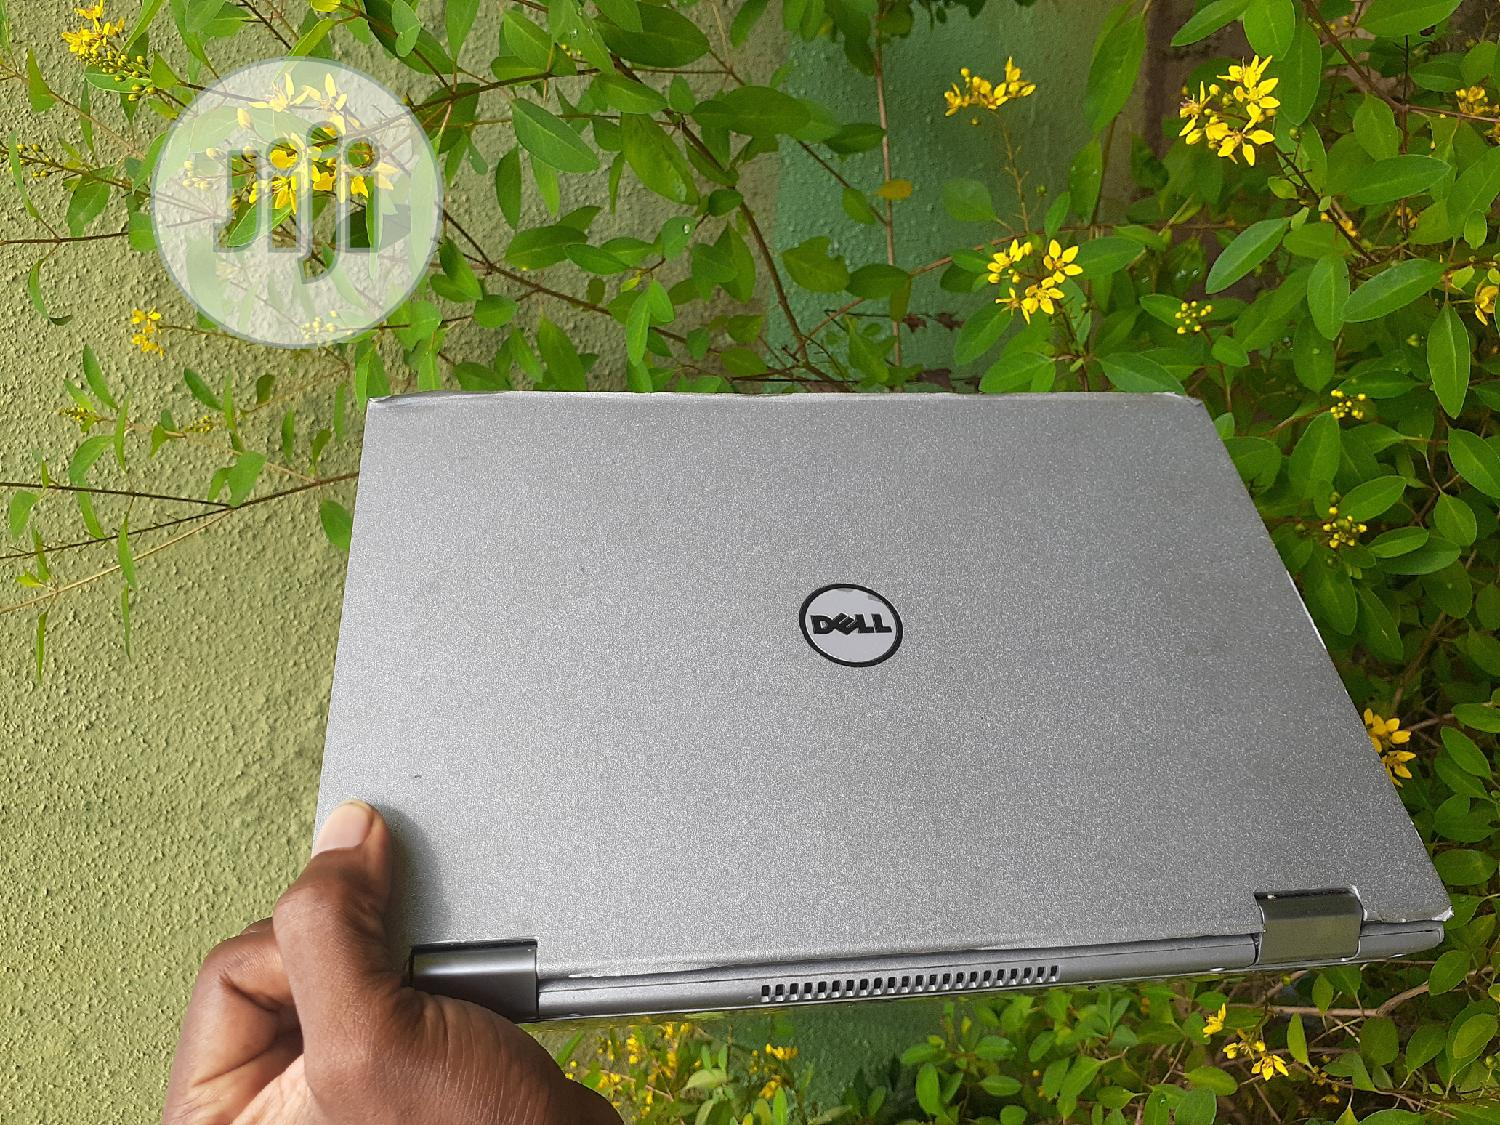 Laptop Dell Inspiron 11 3148 4GB Intel Core I3 HDD 500GB | Laptops & Computers for sale in Ikeja, Lagos State, Nigeria